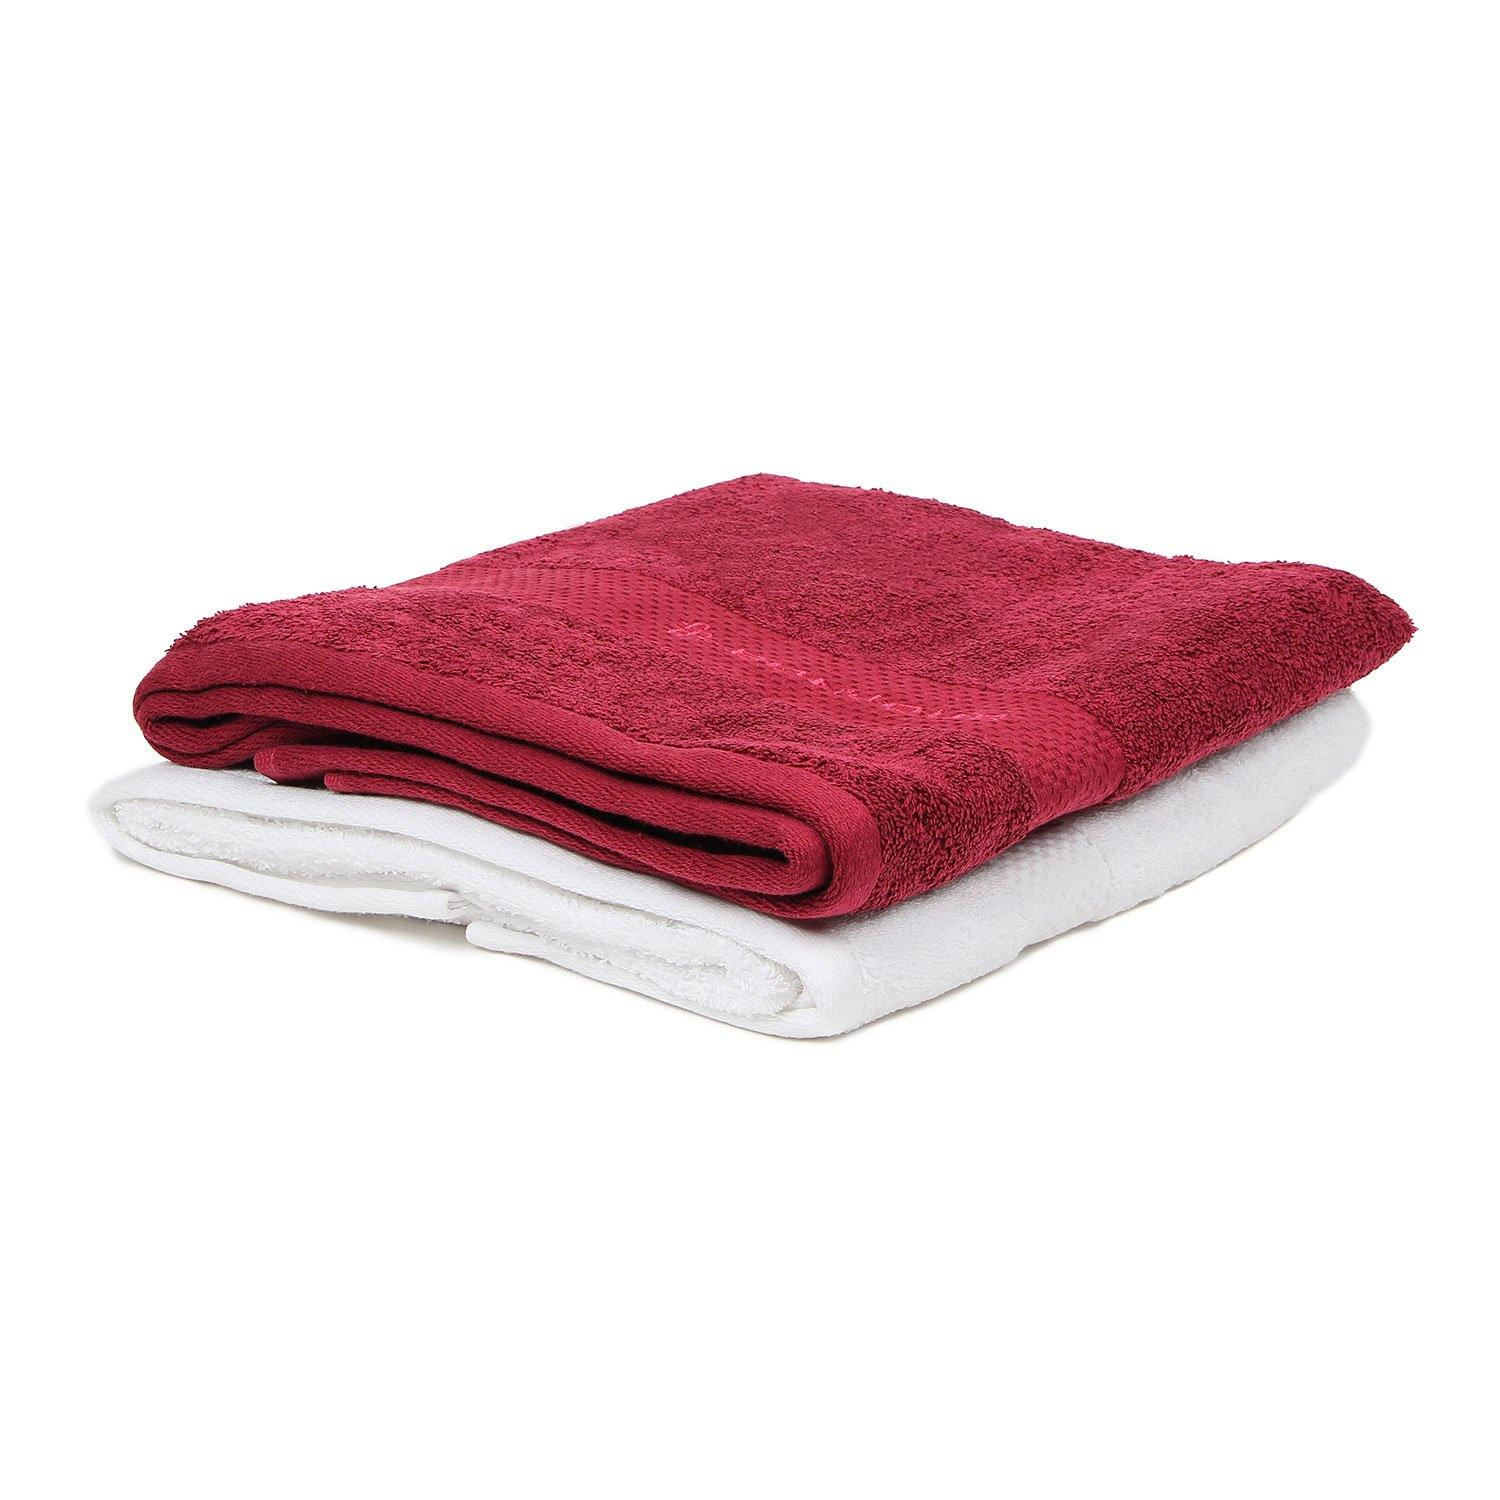 Bath Towel Set for Men-Maroon & White-Pack Of 2